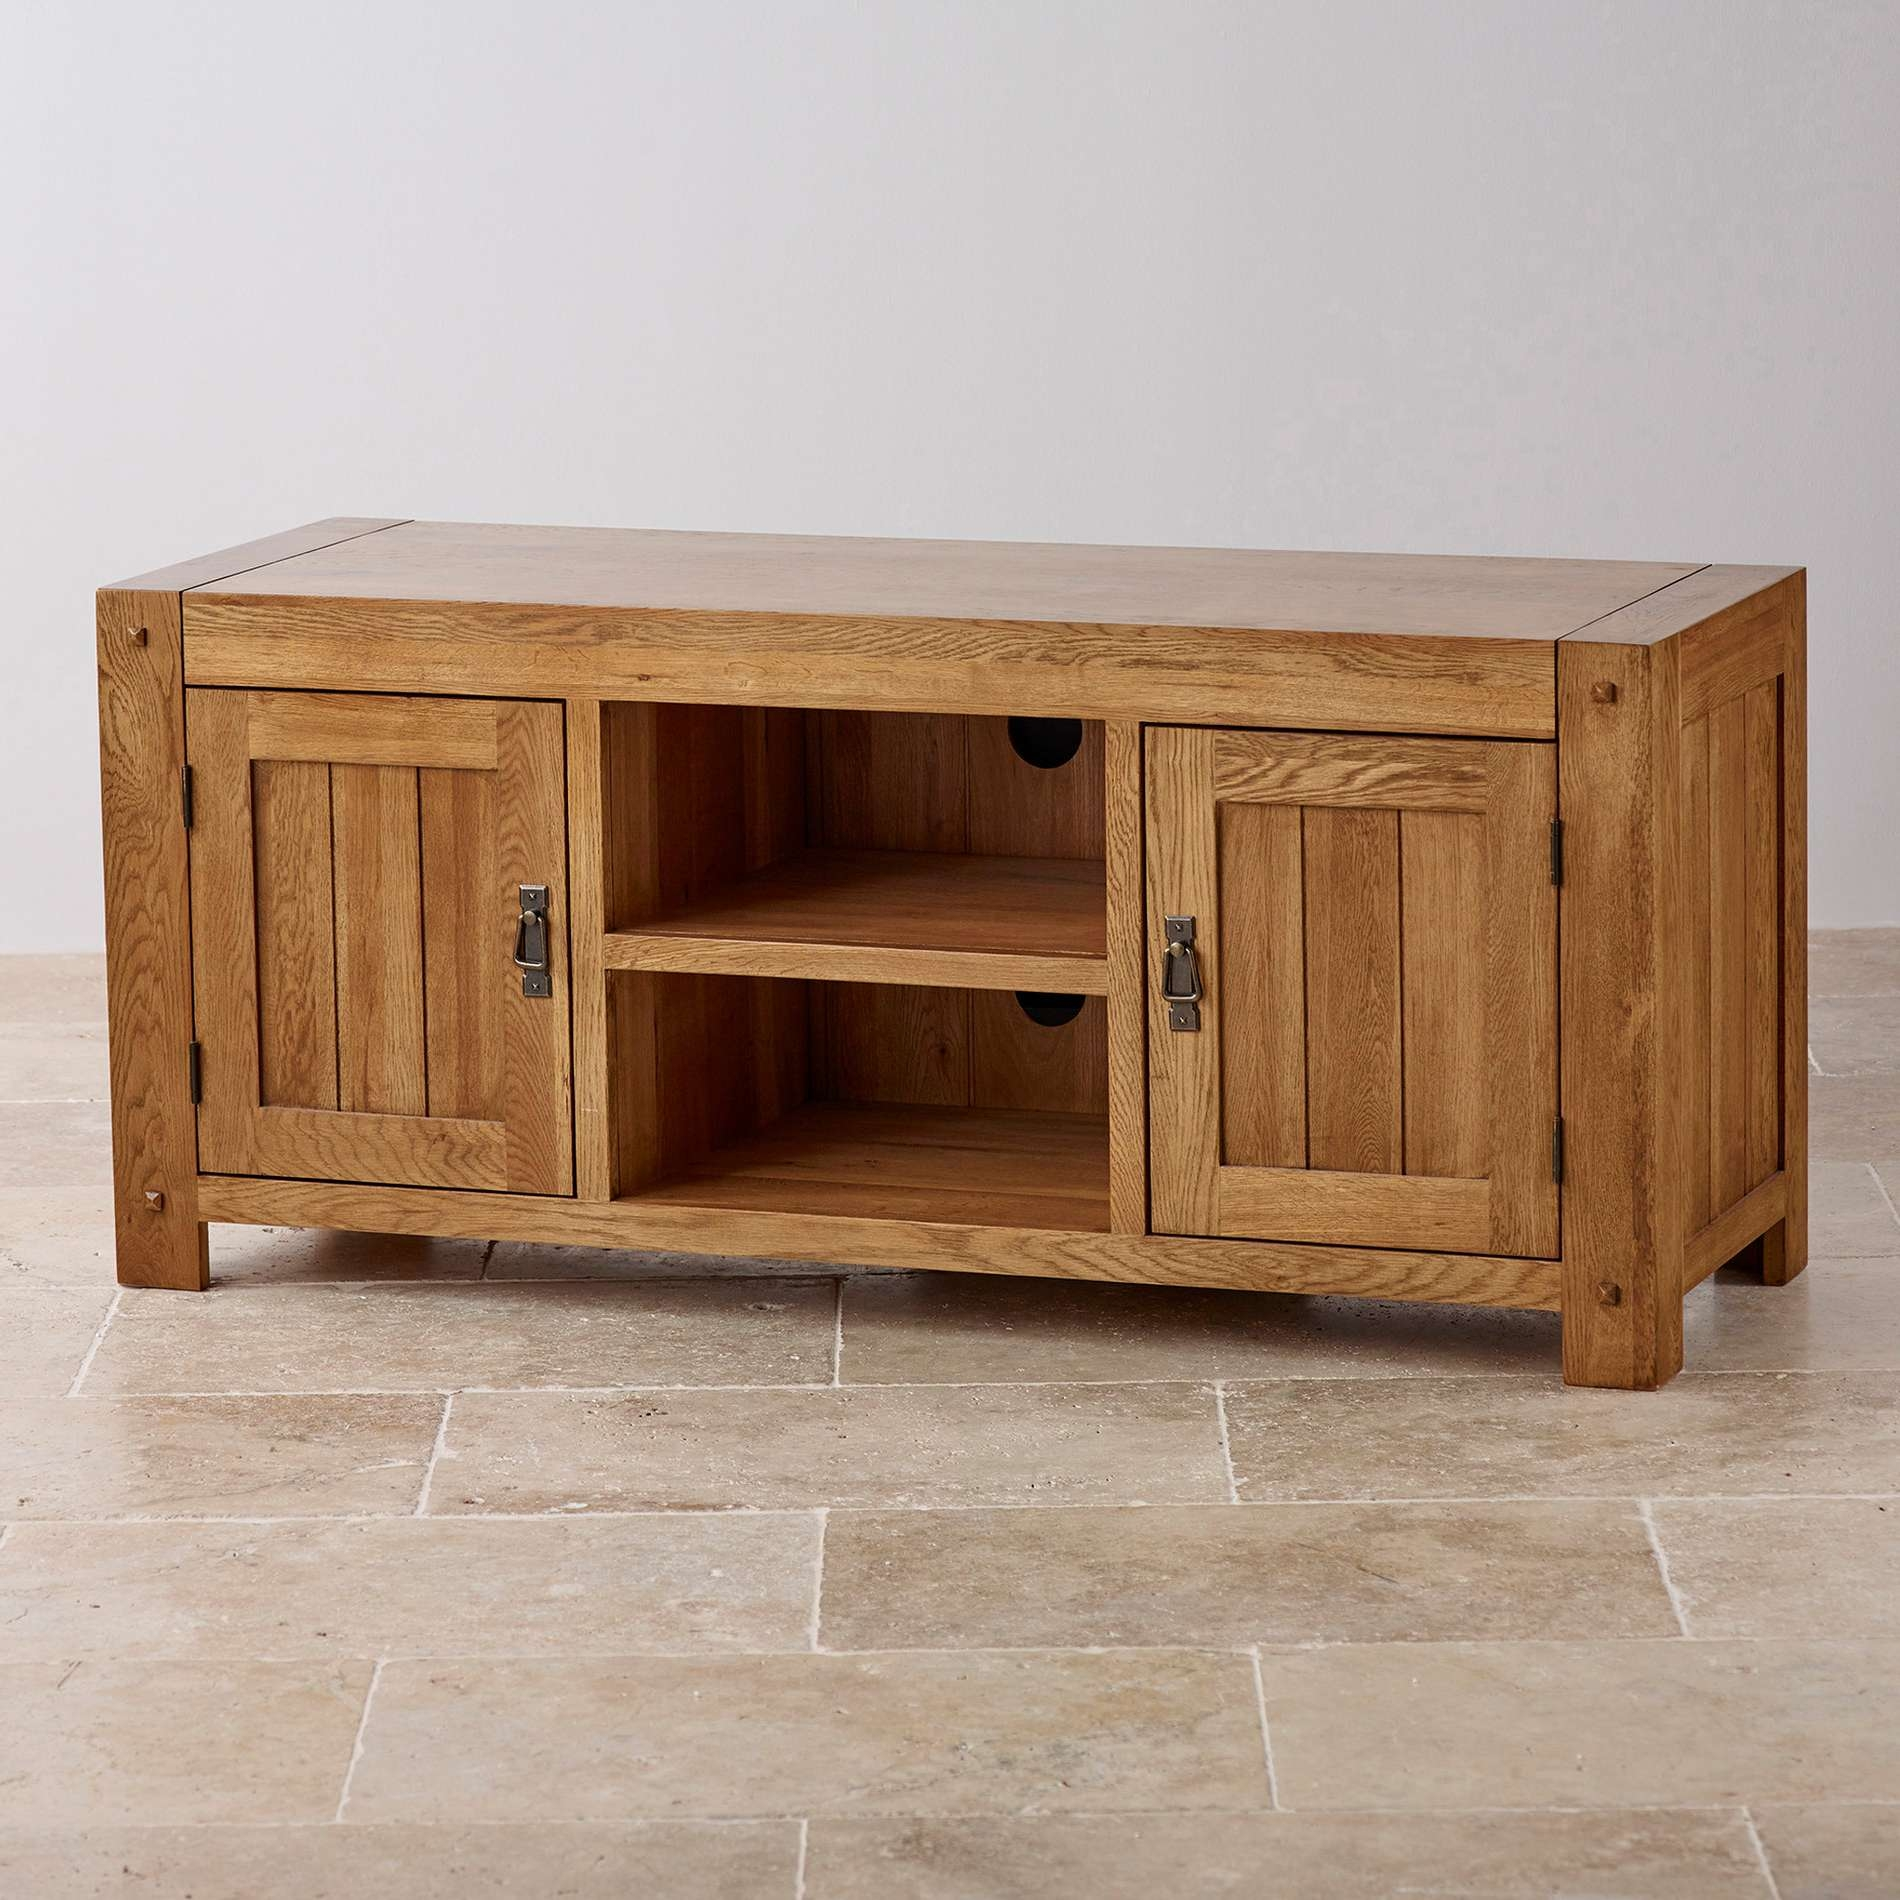 Quercus Wide Tv Cabinet In Rustic Solid Oak | Oak Furniture Land Inside Widescreen Tv Cabinets (Gallery 5 of 20)